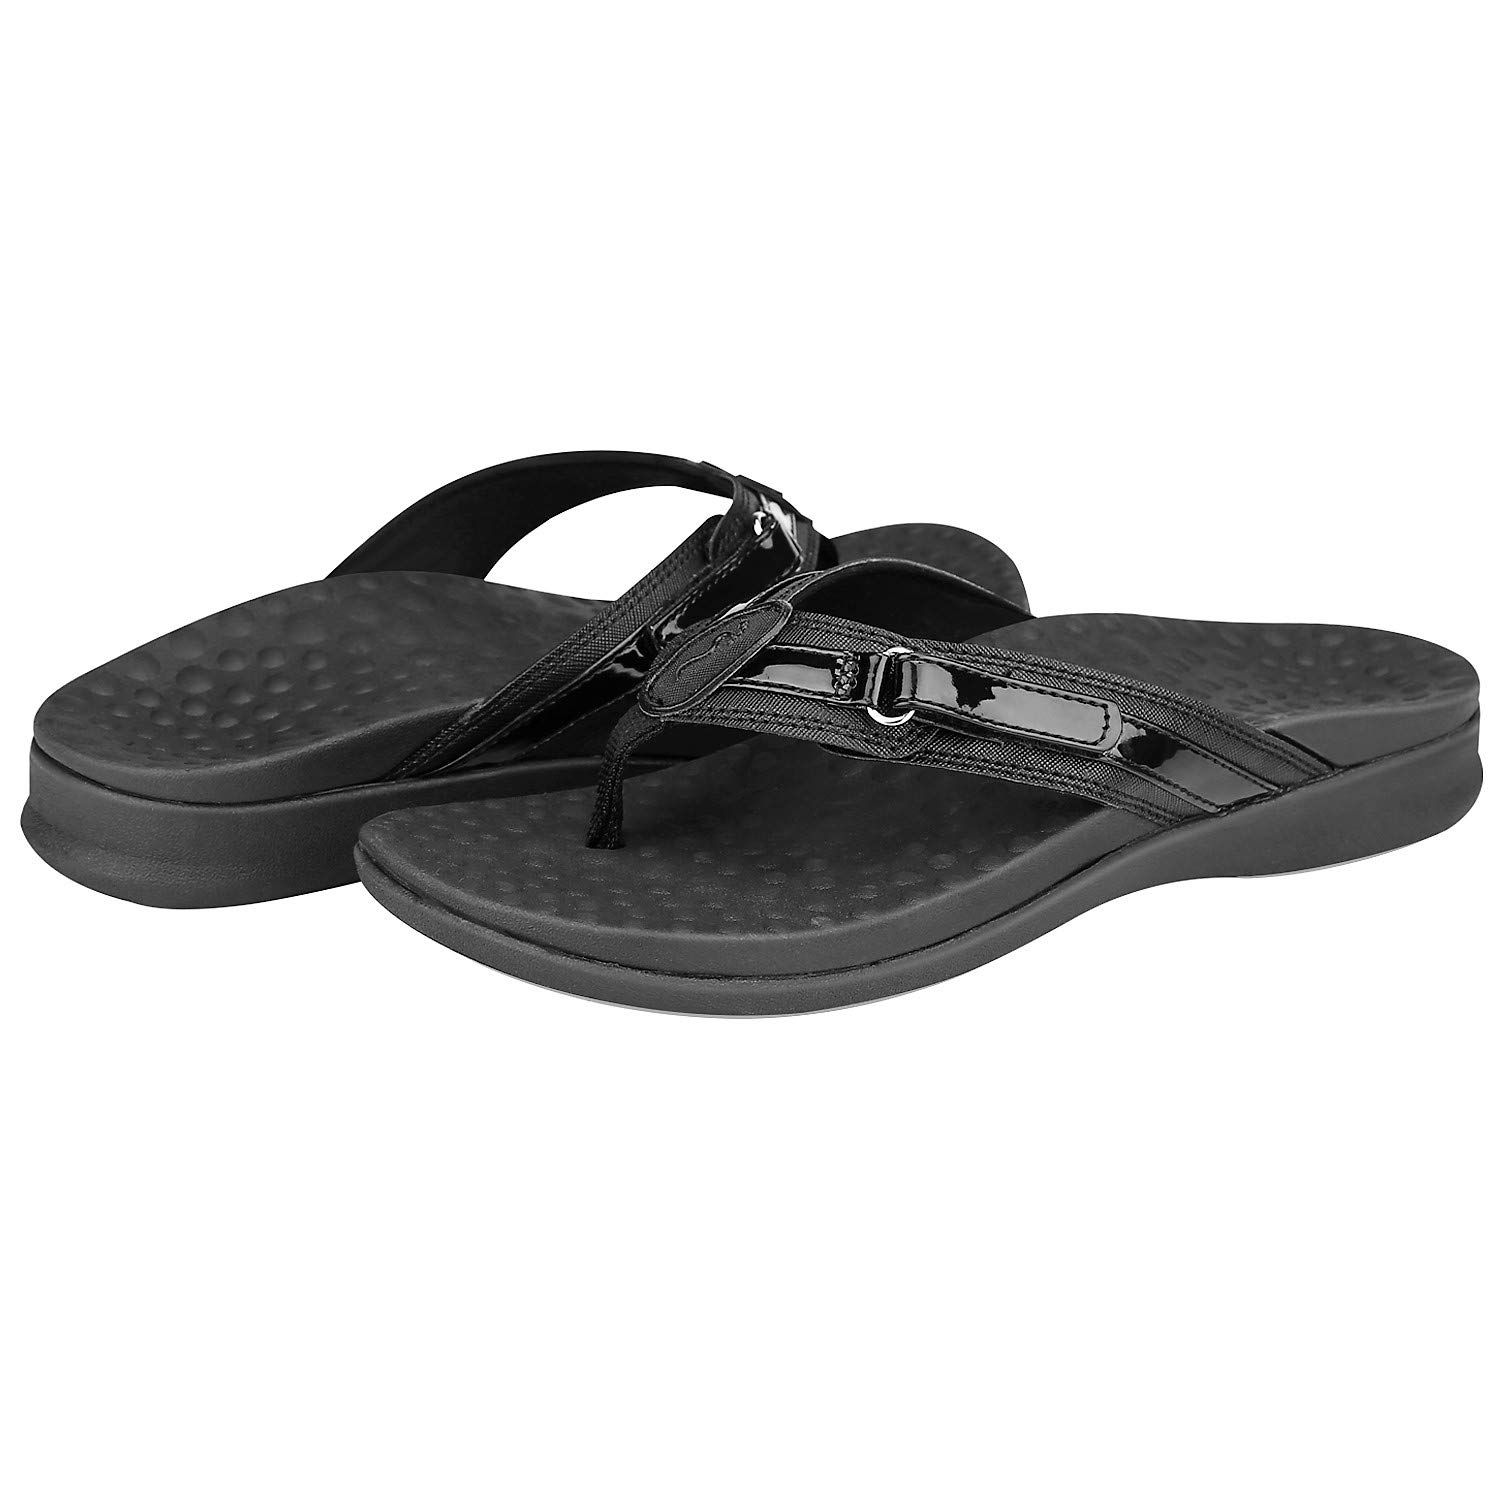 Footminders Seymour Women's Orthotic Sandals - Orthopedic Arch Support and Comfort (US Women's 8, Black) by Footminders